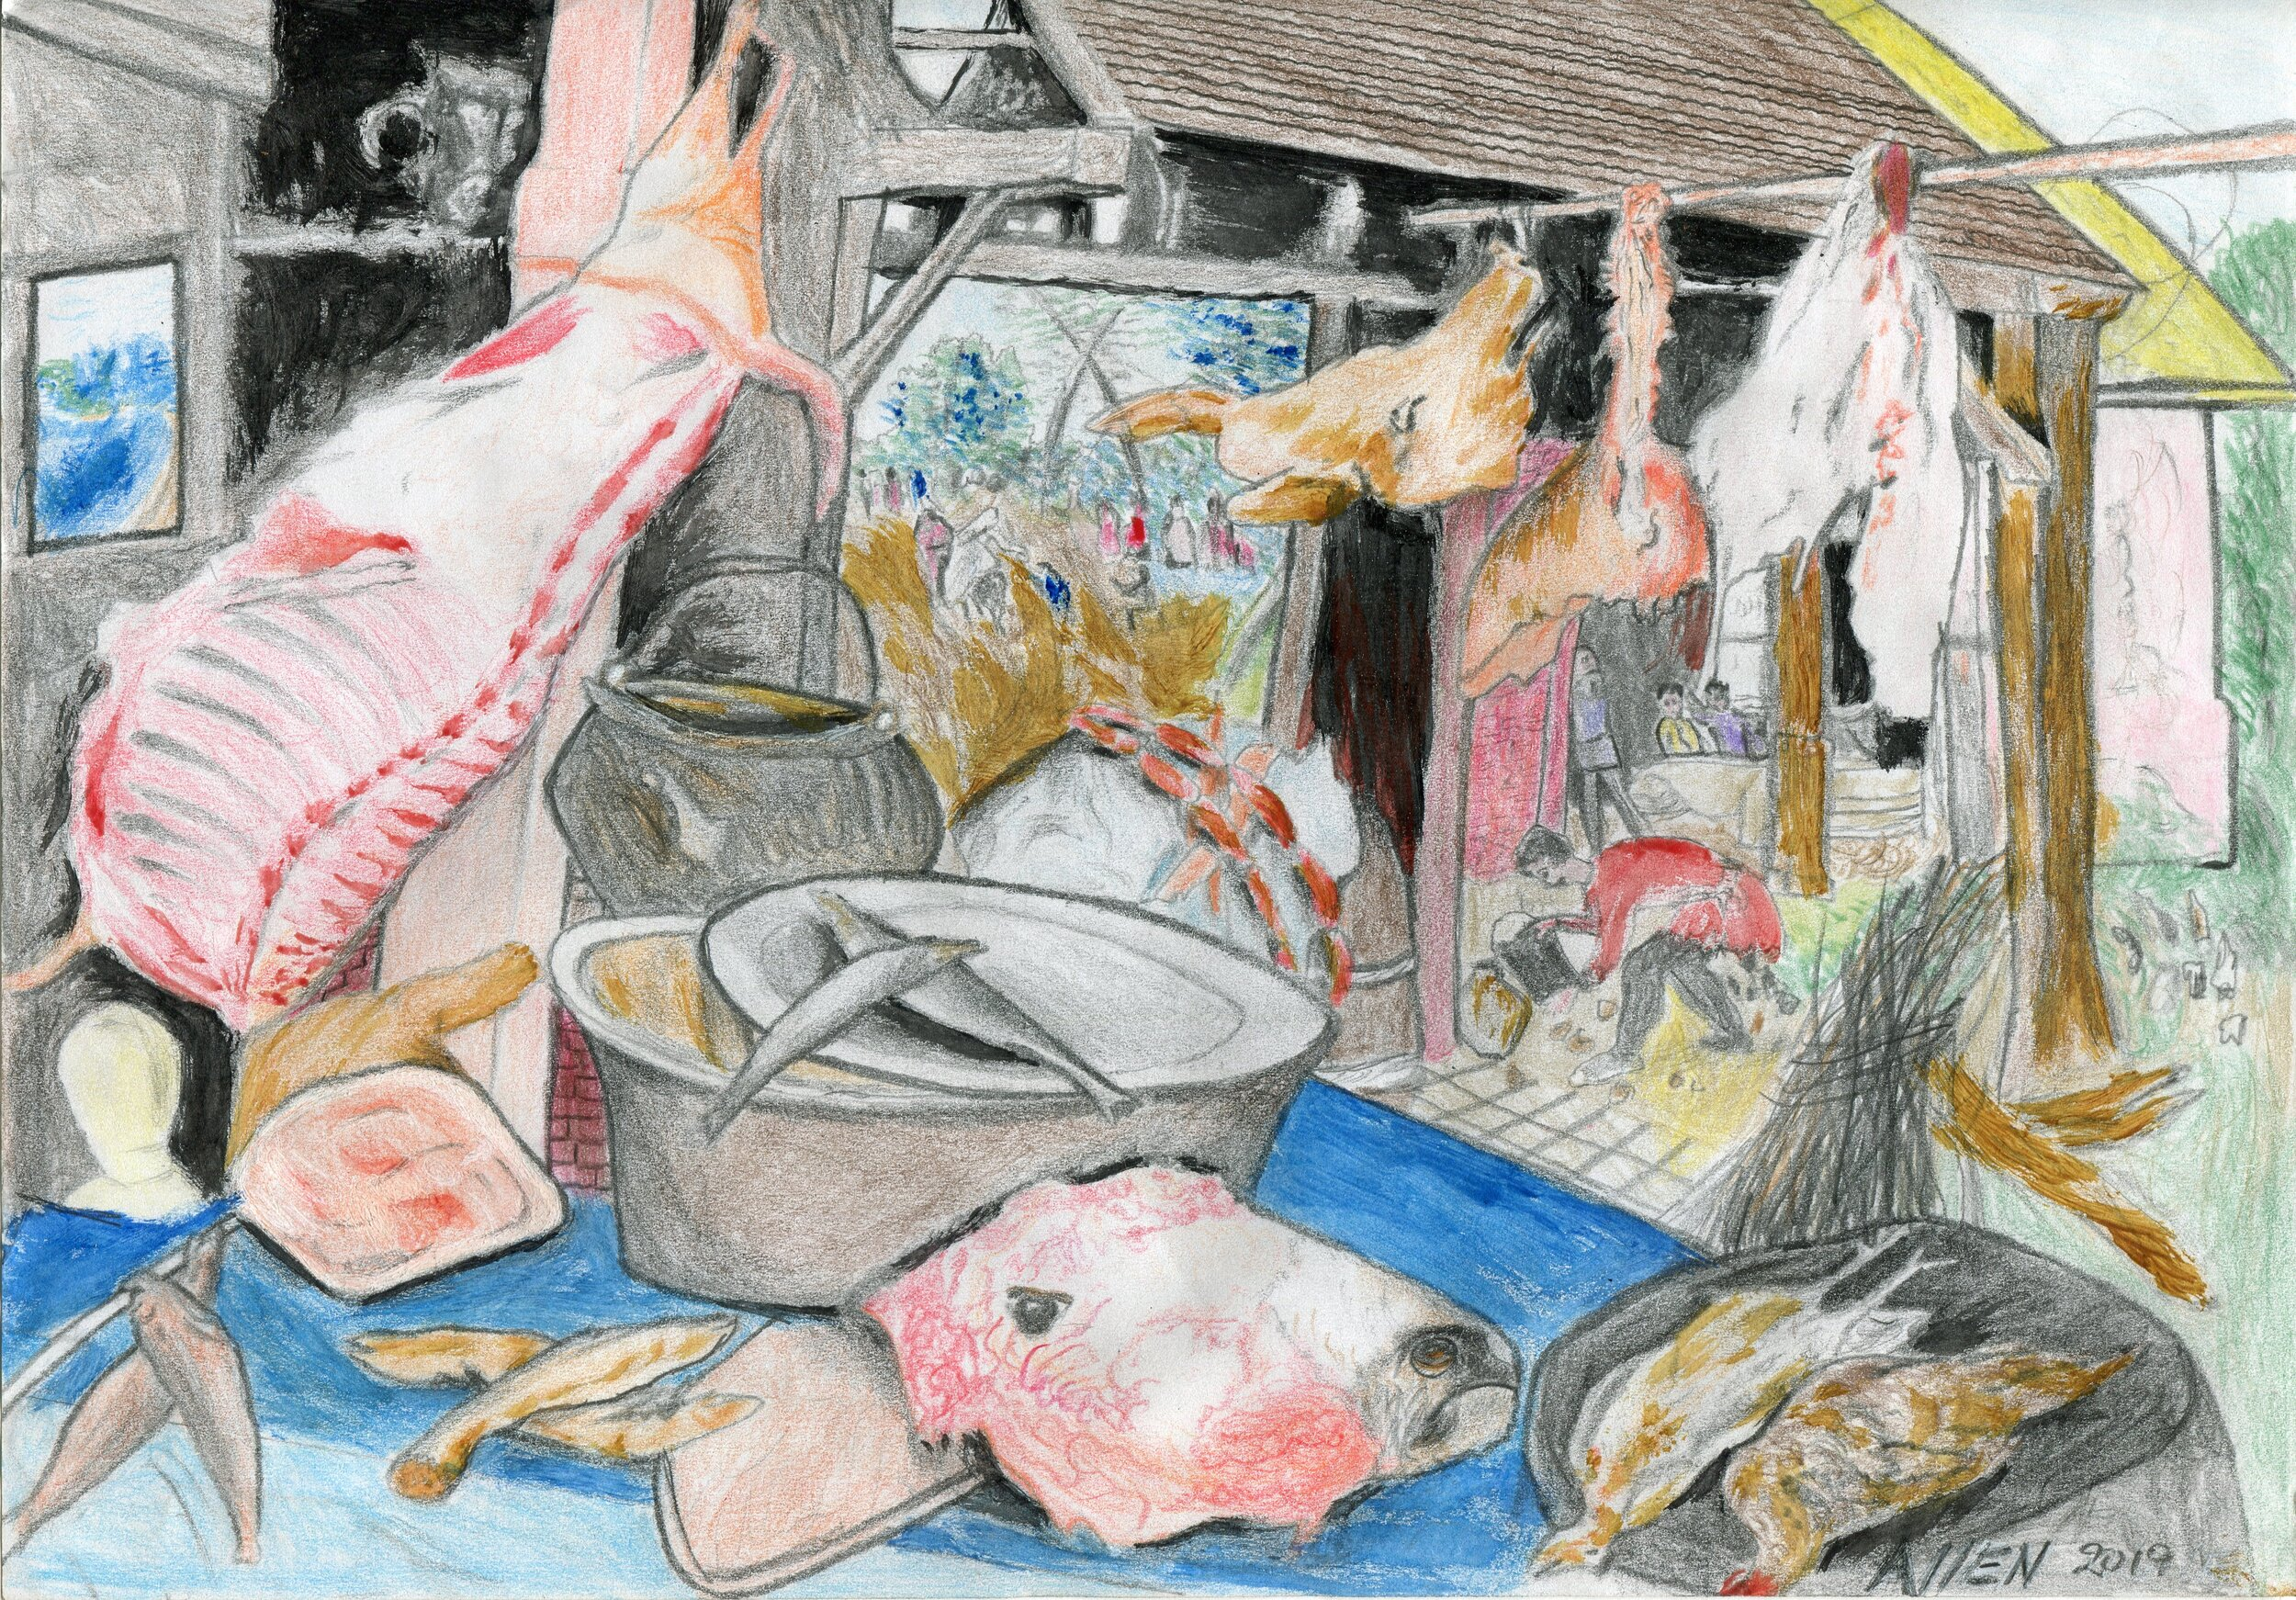 70a  Allen Hlela  Meat market  pencil and crayon on paper